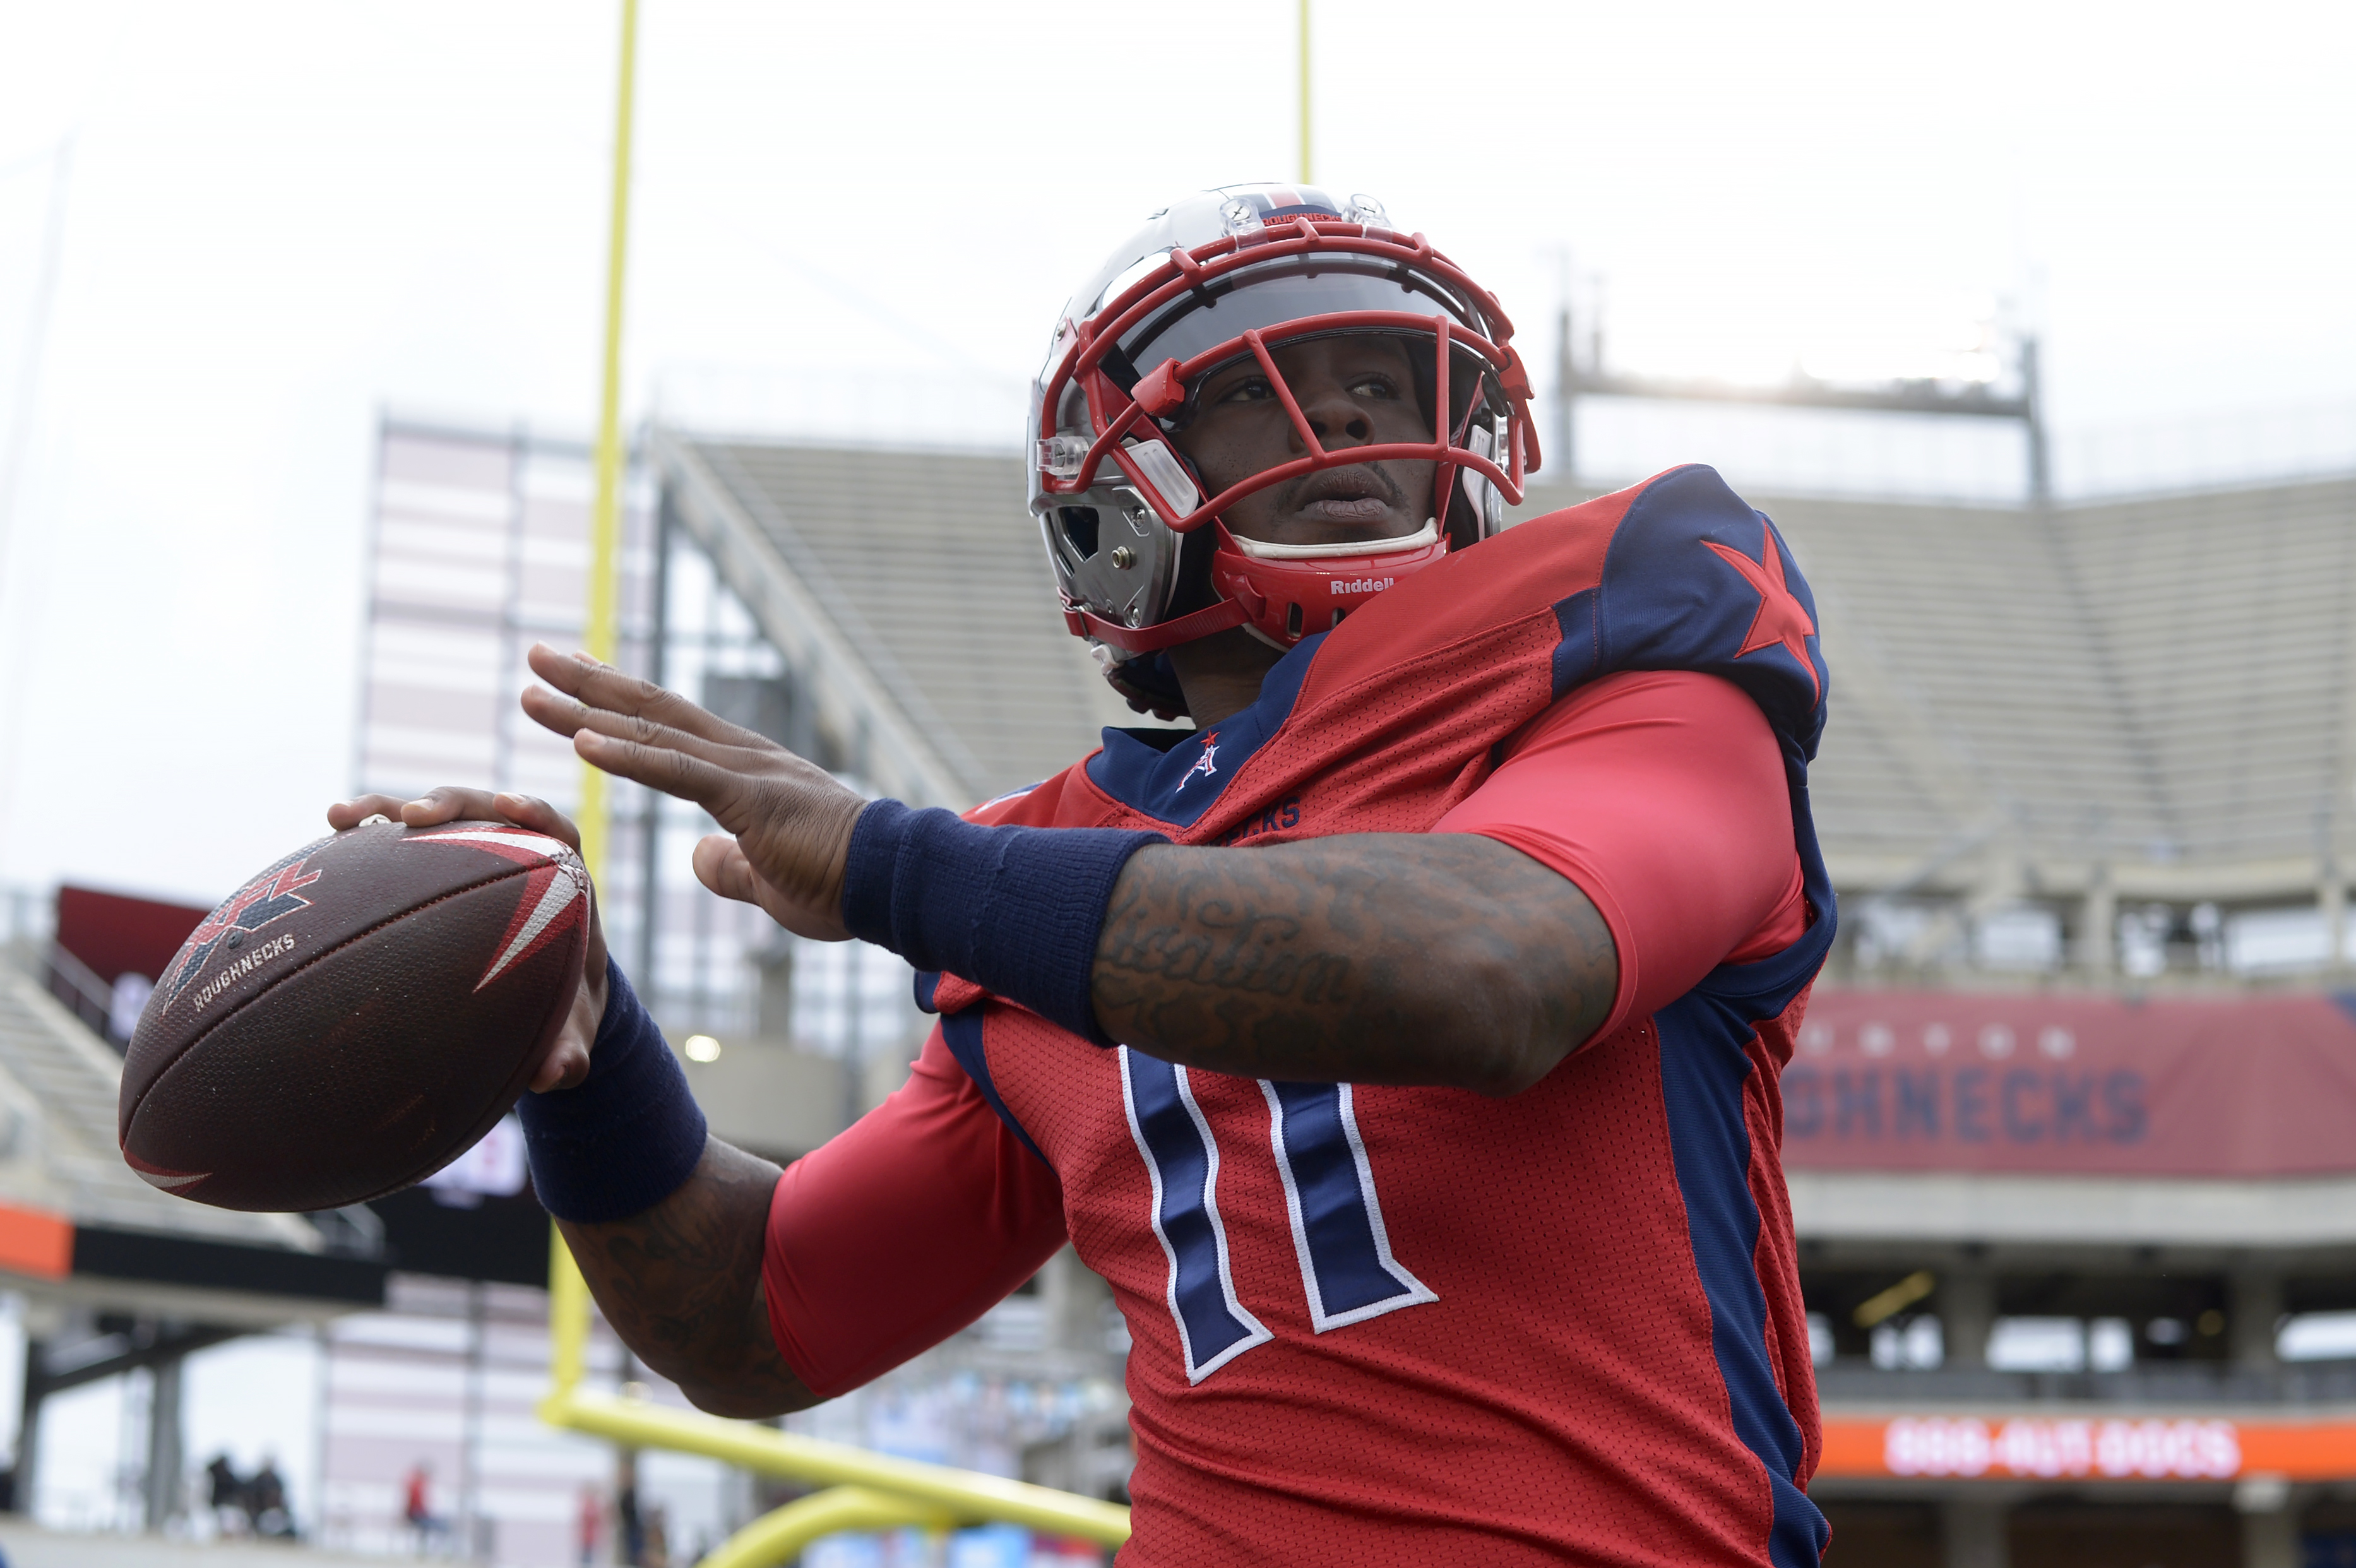 P.J. Walker #11 of the Houston Roughnecks warms up before the XFL game against the Seattle Dragons at TDECU Stadium on March 7, 2020 in Houston, Texas.